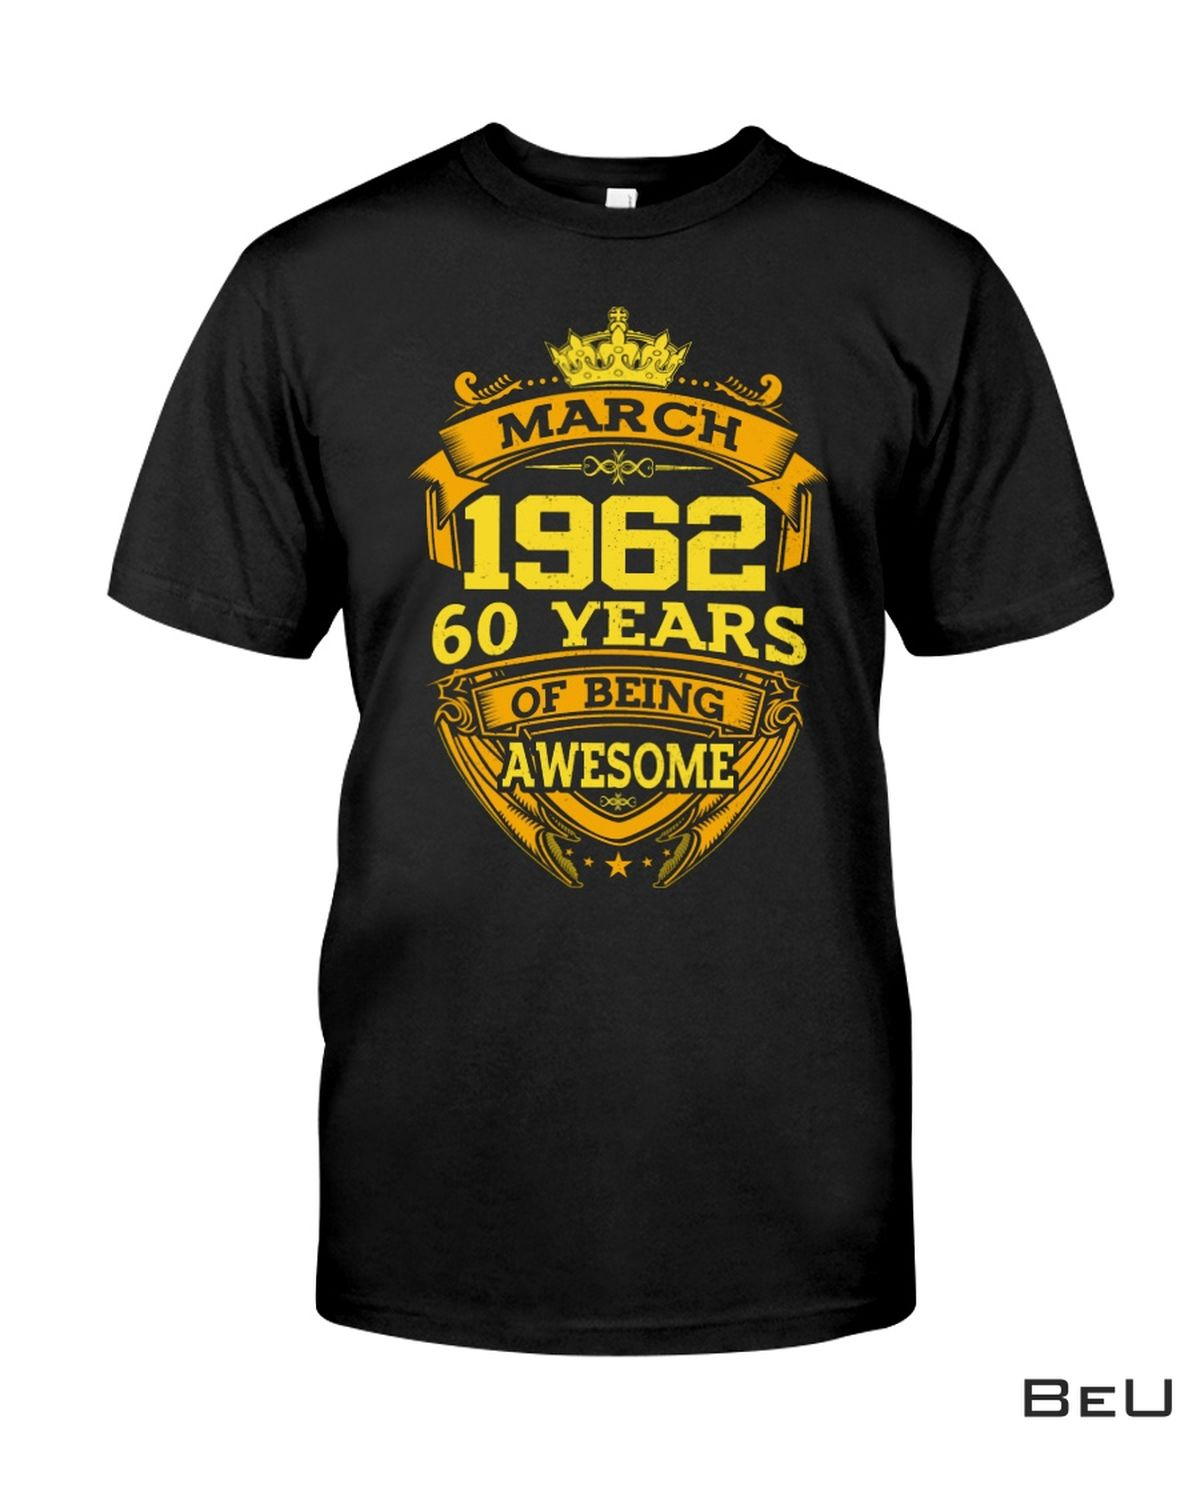 March 1962 60 Years Of Being Awesome Vintage Shirt, hoodie, tank top